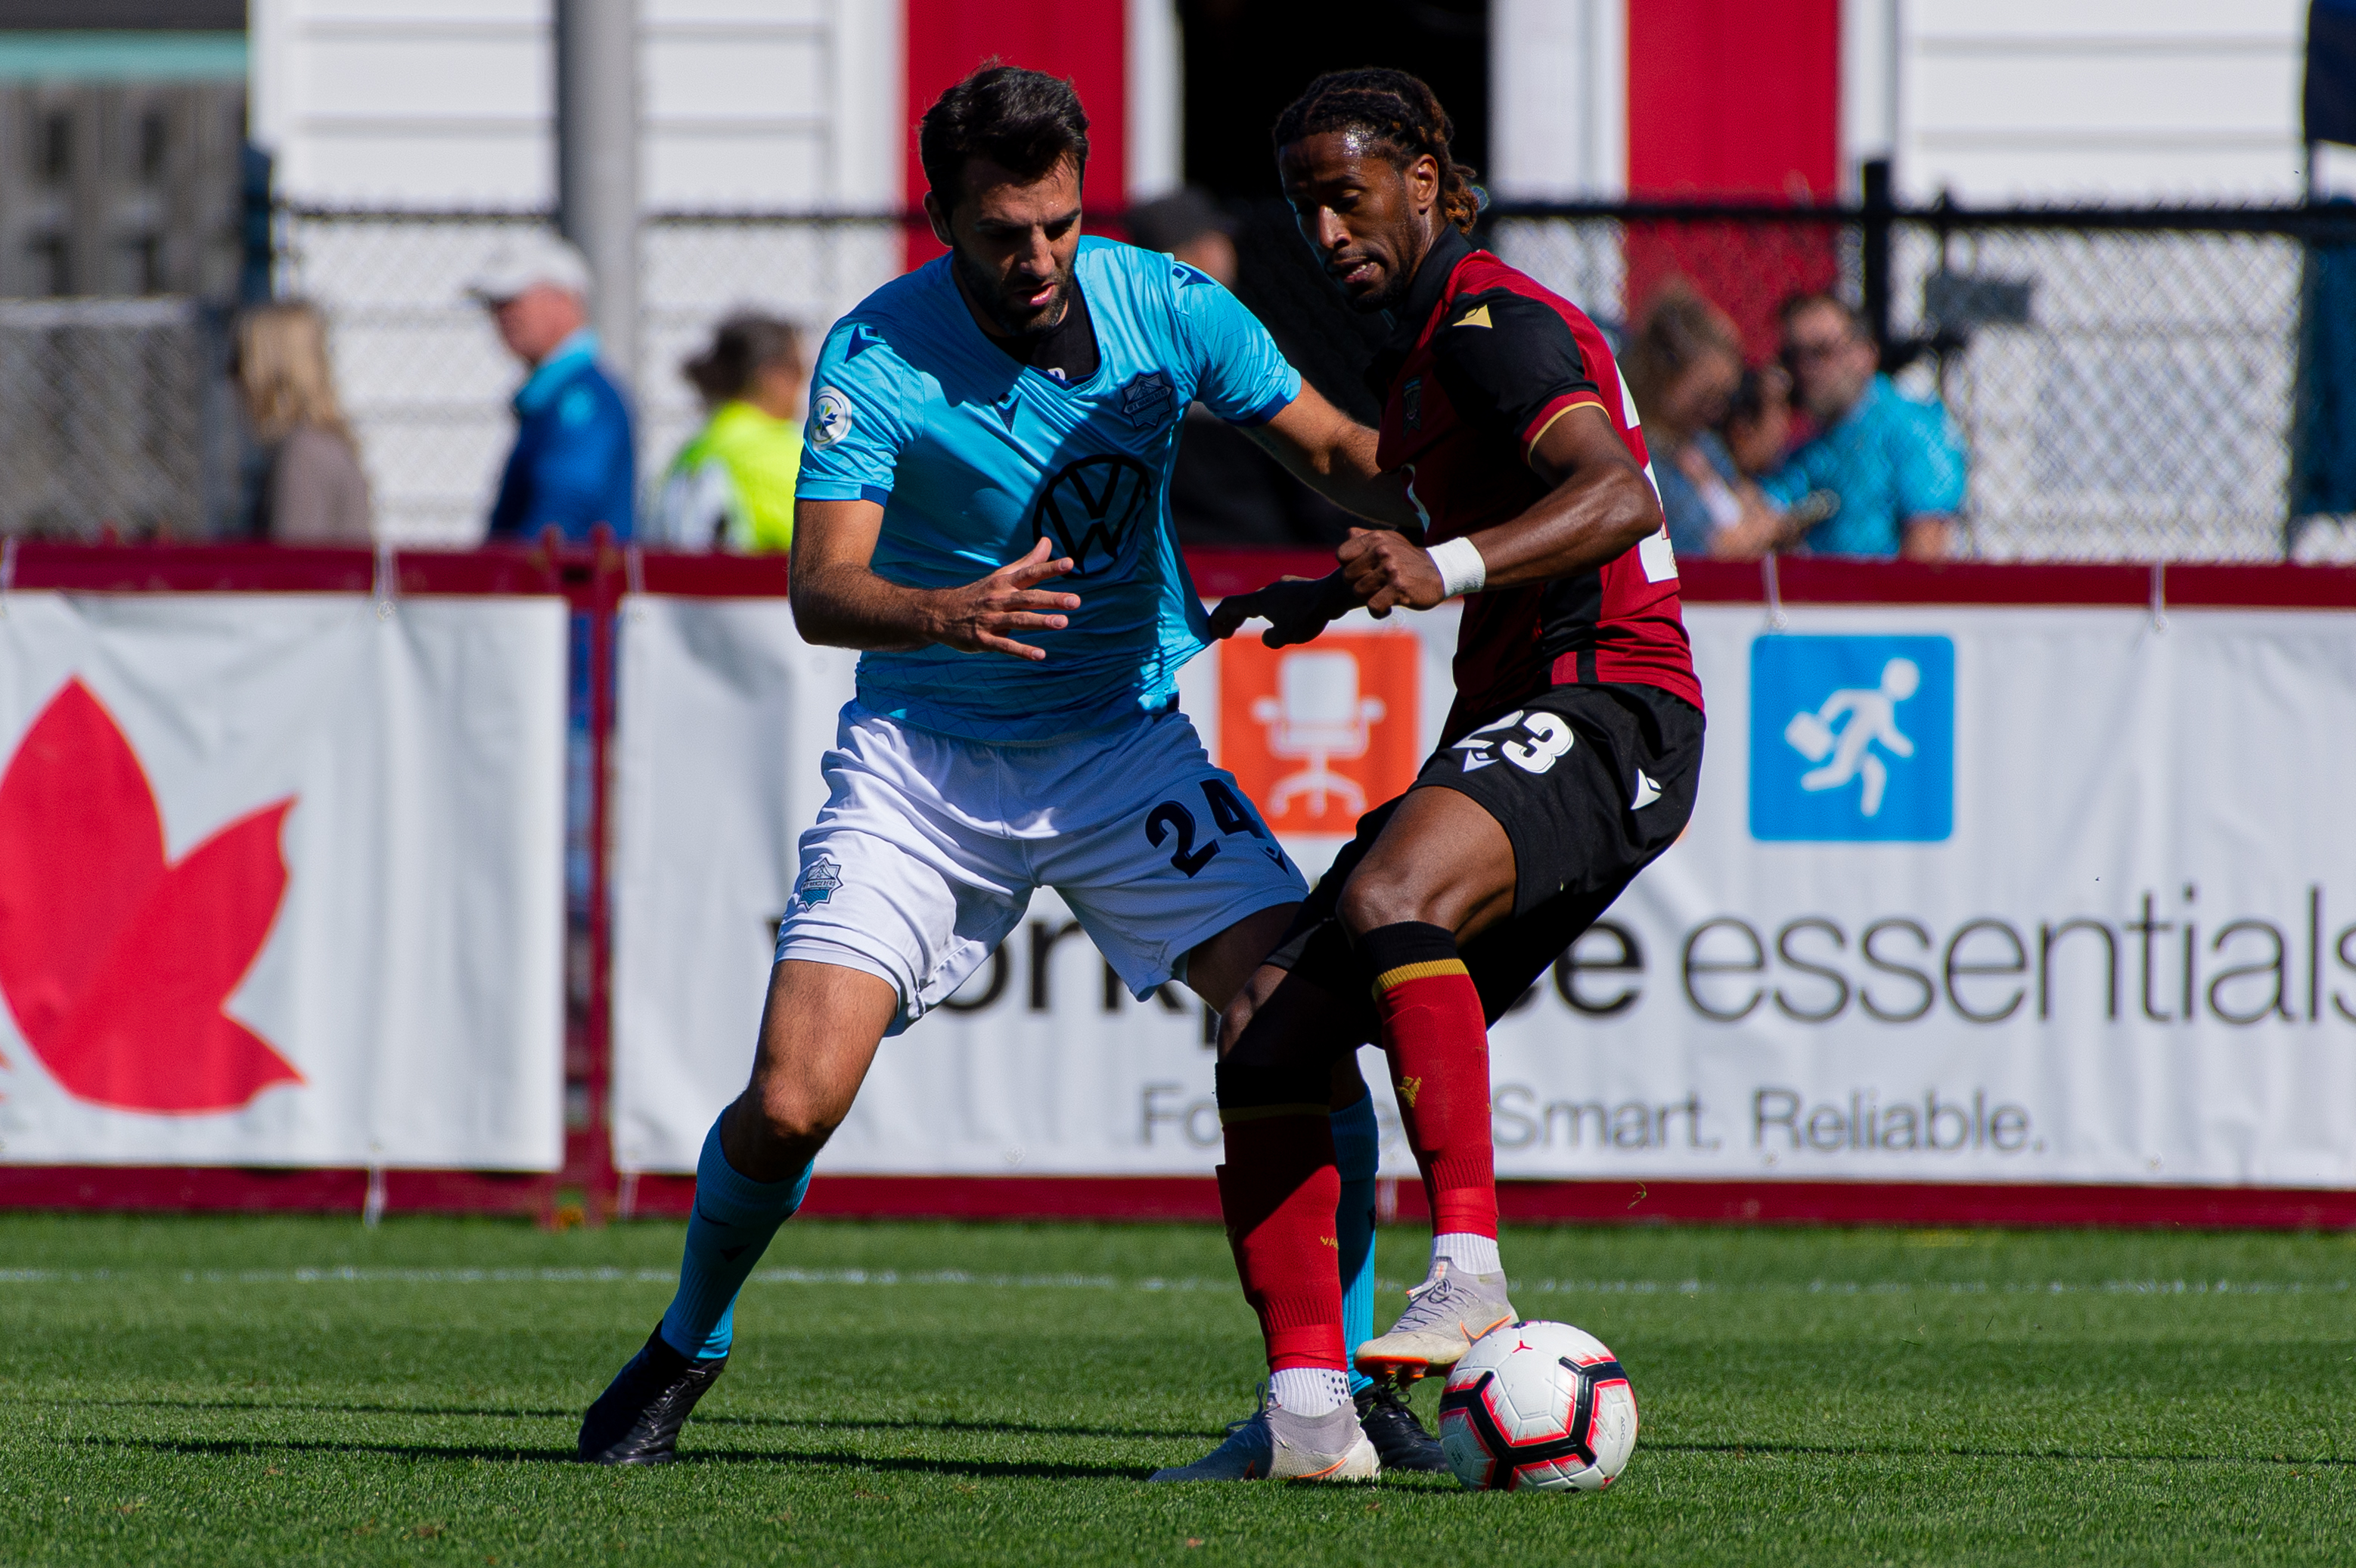 HFX Wanderers FC defender Alex De Carolis tries to defend against Valour FC attacker Ali Musse. (Trevor MacMillan/CPL).